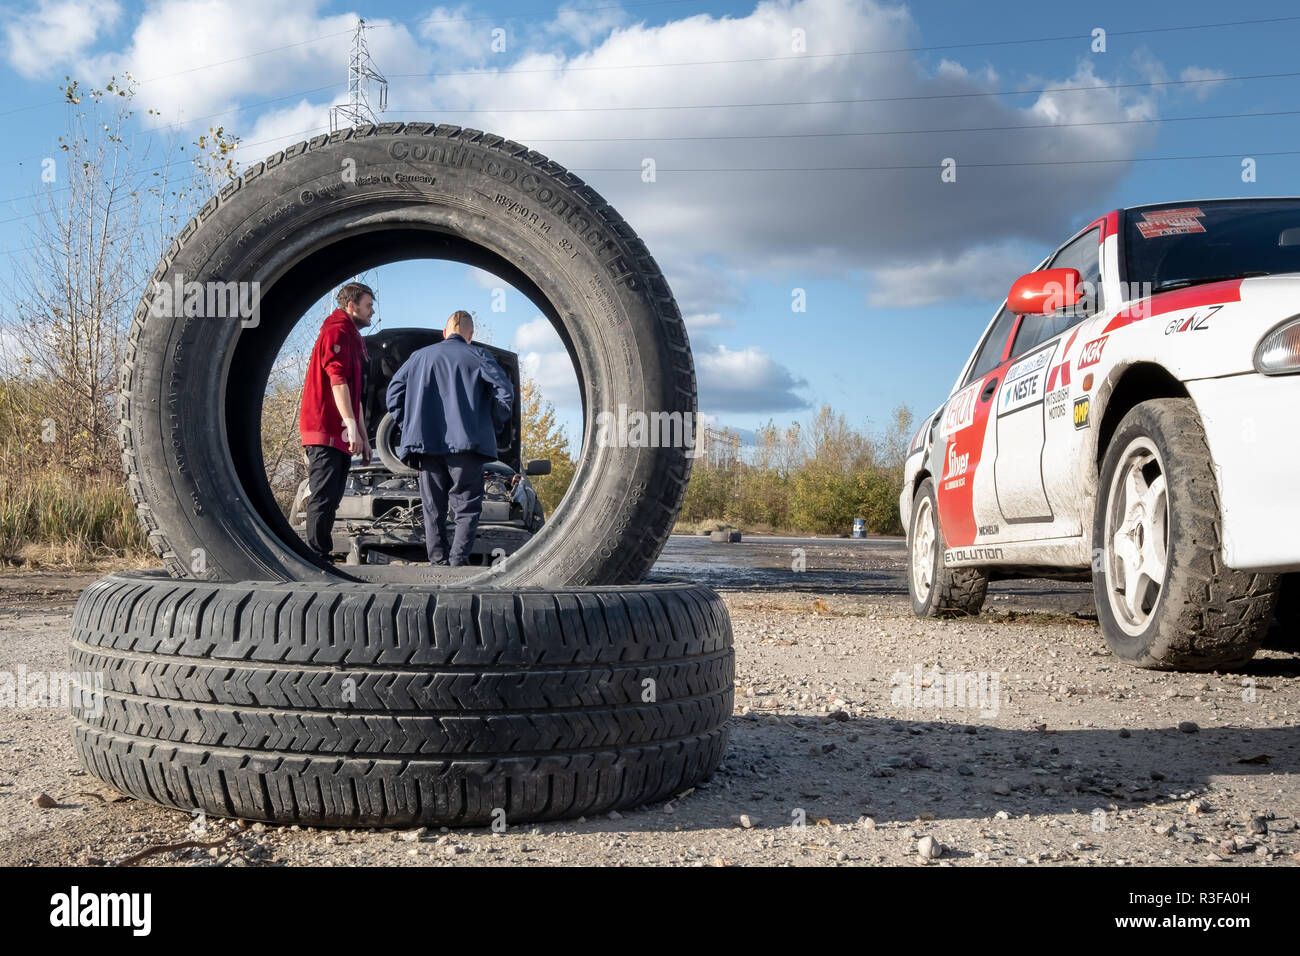 Warsaw / Poland - October 21, 2018: broken car during amateur drifting event in Ursus, abandoned tractor factory in Warsaw outskirts - Stock Image